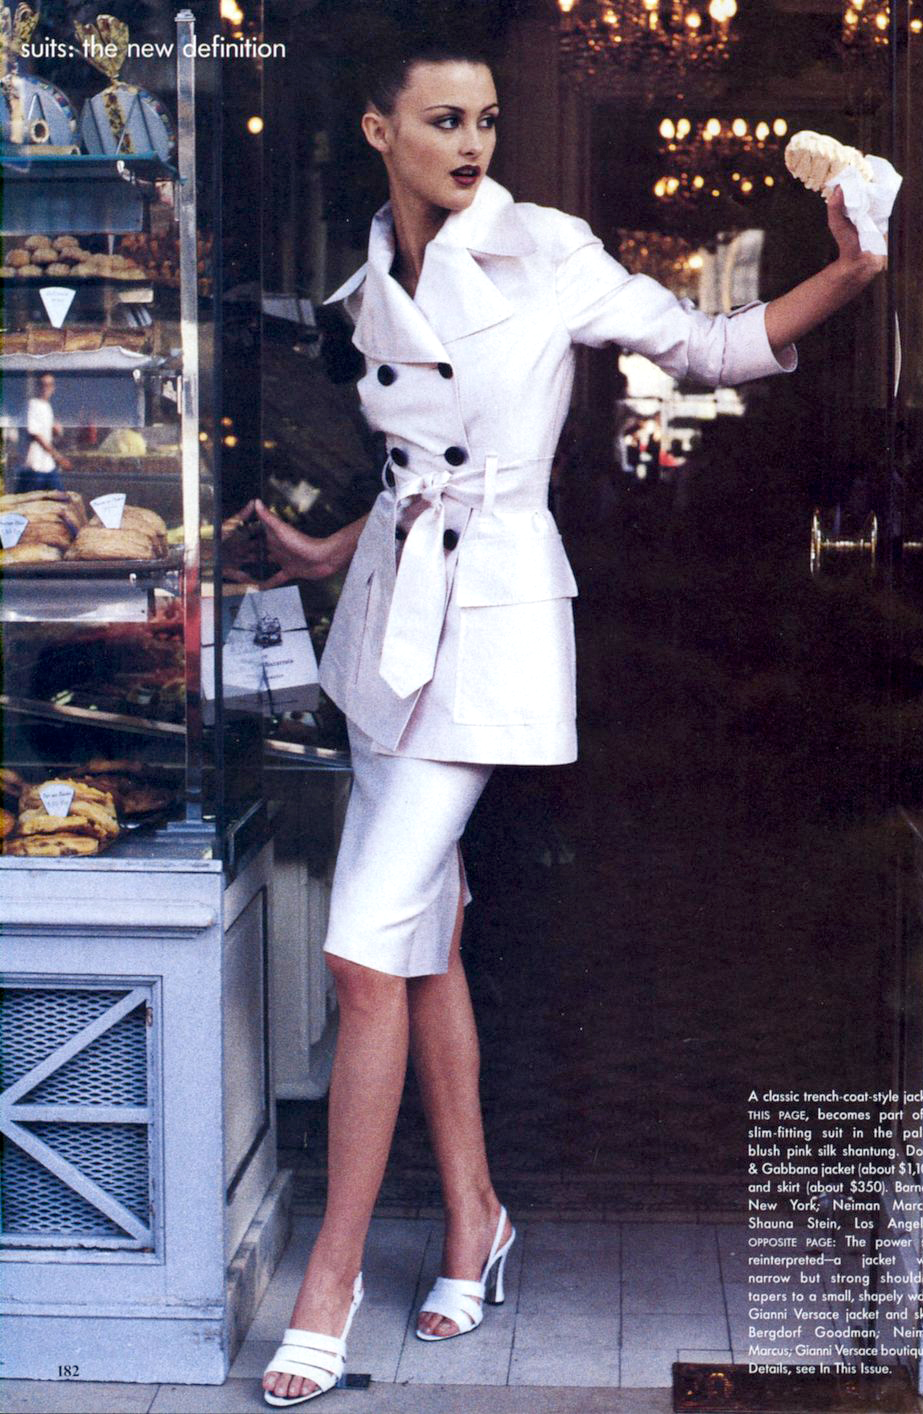 Trish Goff in Suits: the new definition / Vogue US January 1995 (photography: Pamela Hanson, styling: Brana Wolf) via fashioned by love british fashion blog